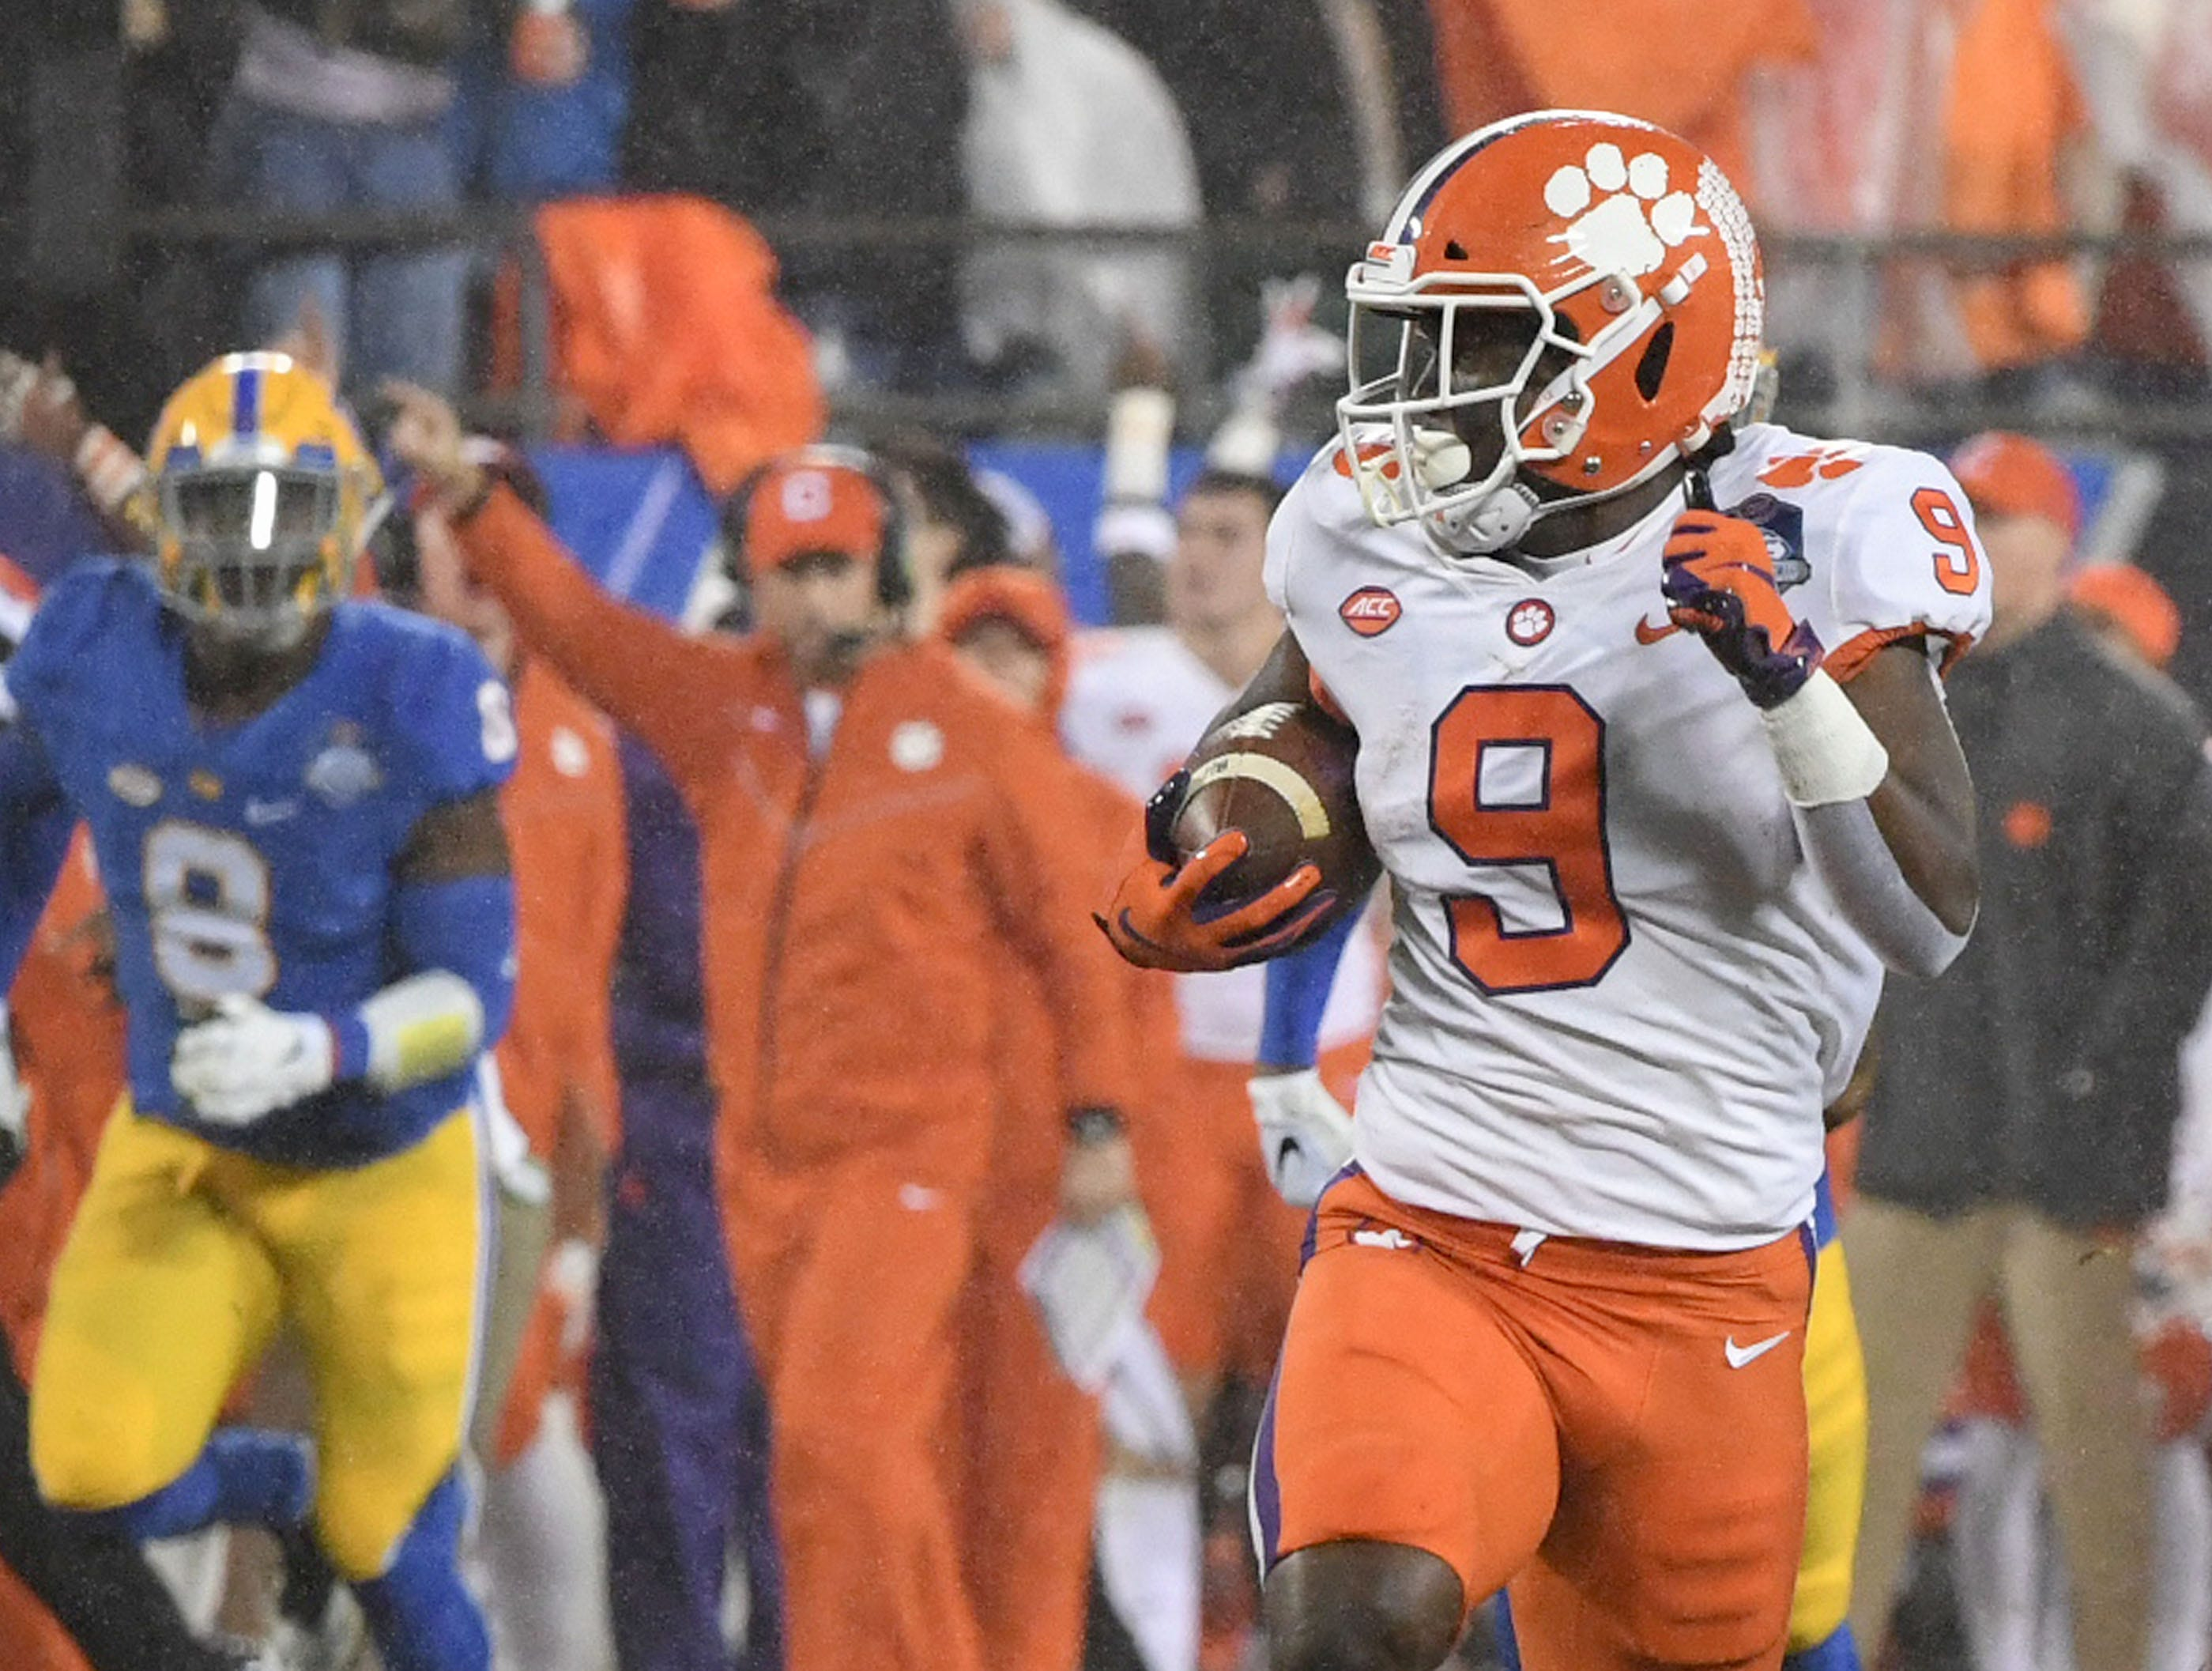 Clemson running back Travis Etienne (9) runs the first play from scrimmage 75 yards for a touchdown as Clemson Head Coach Dabo Swinney raises his arm in the background, against Pitt during the first quarter of the Dr. Pepper ACC football championship at Bank of America Stadium in Charlotte, N.C. on Saturday, December 1, 2018.